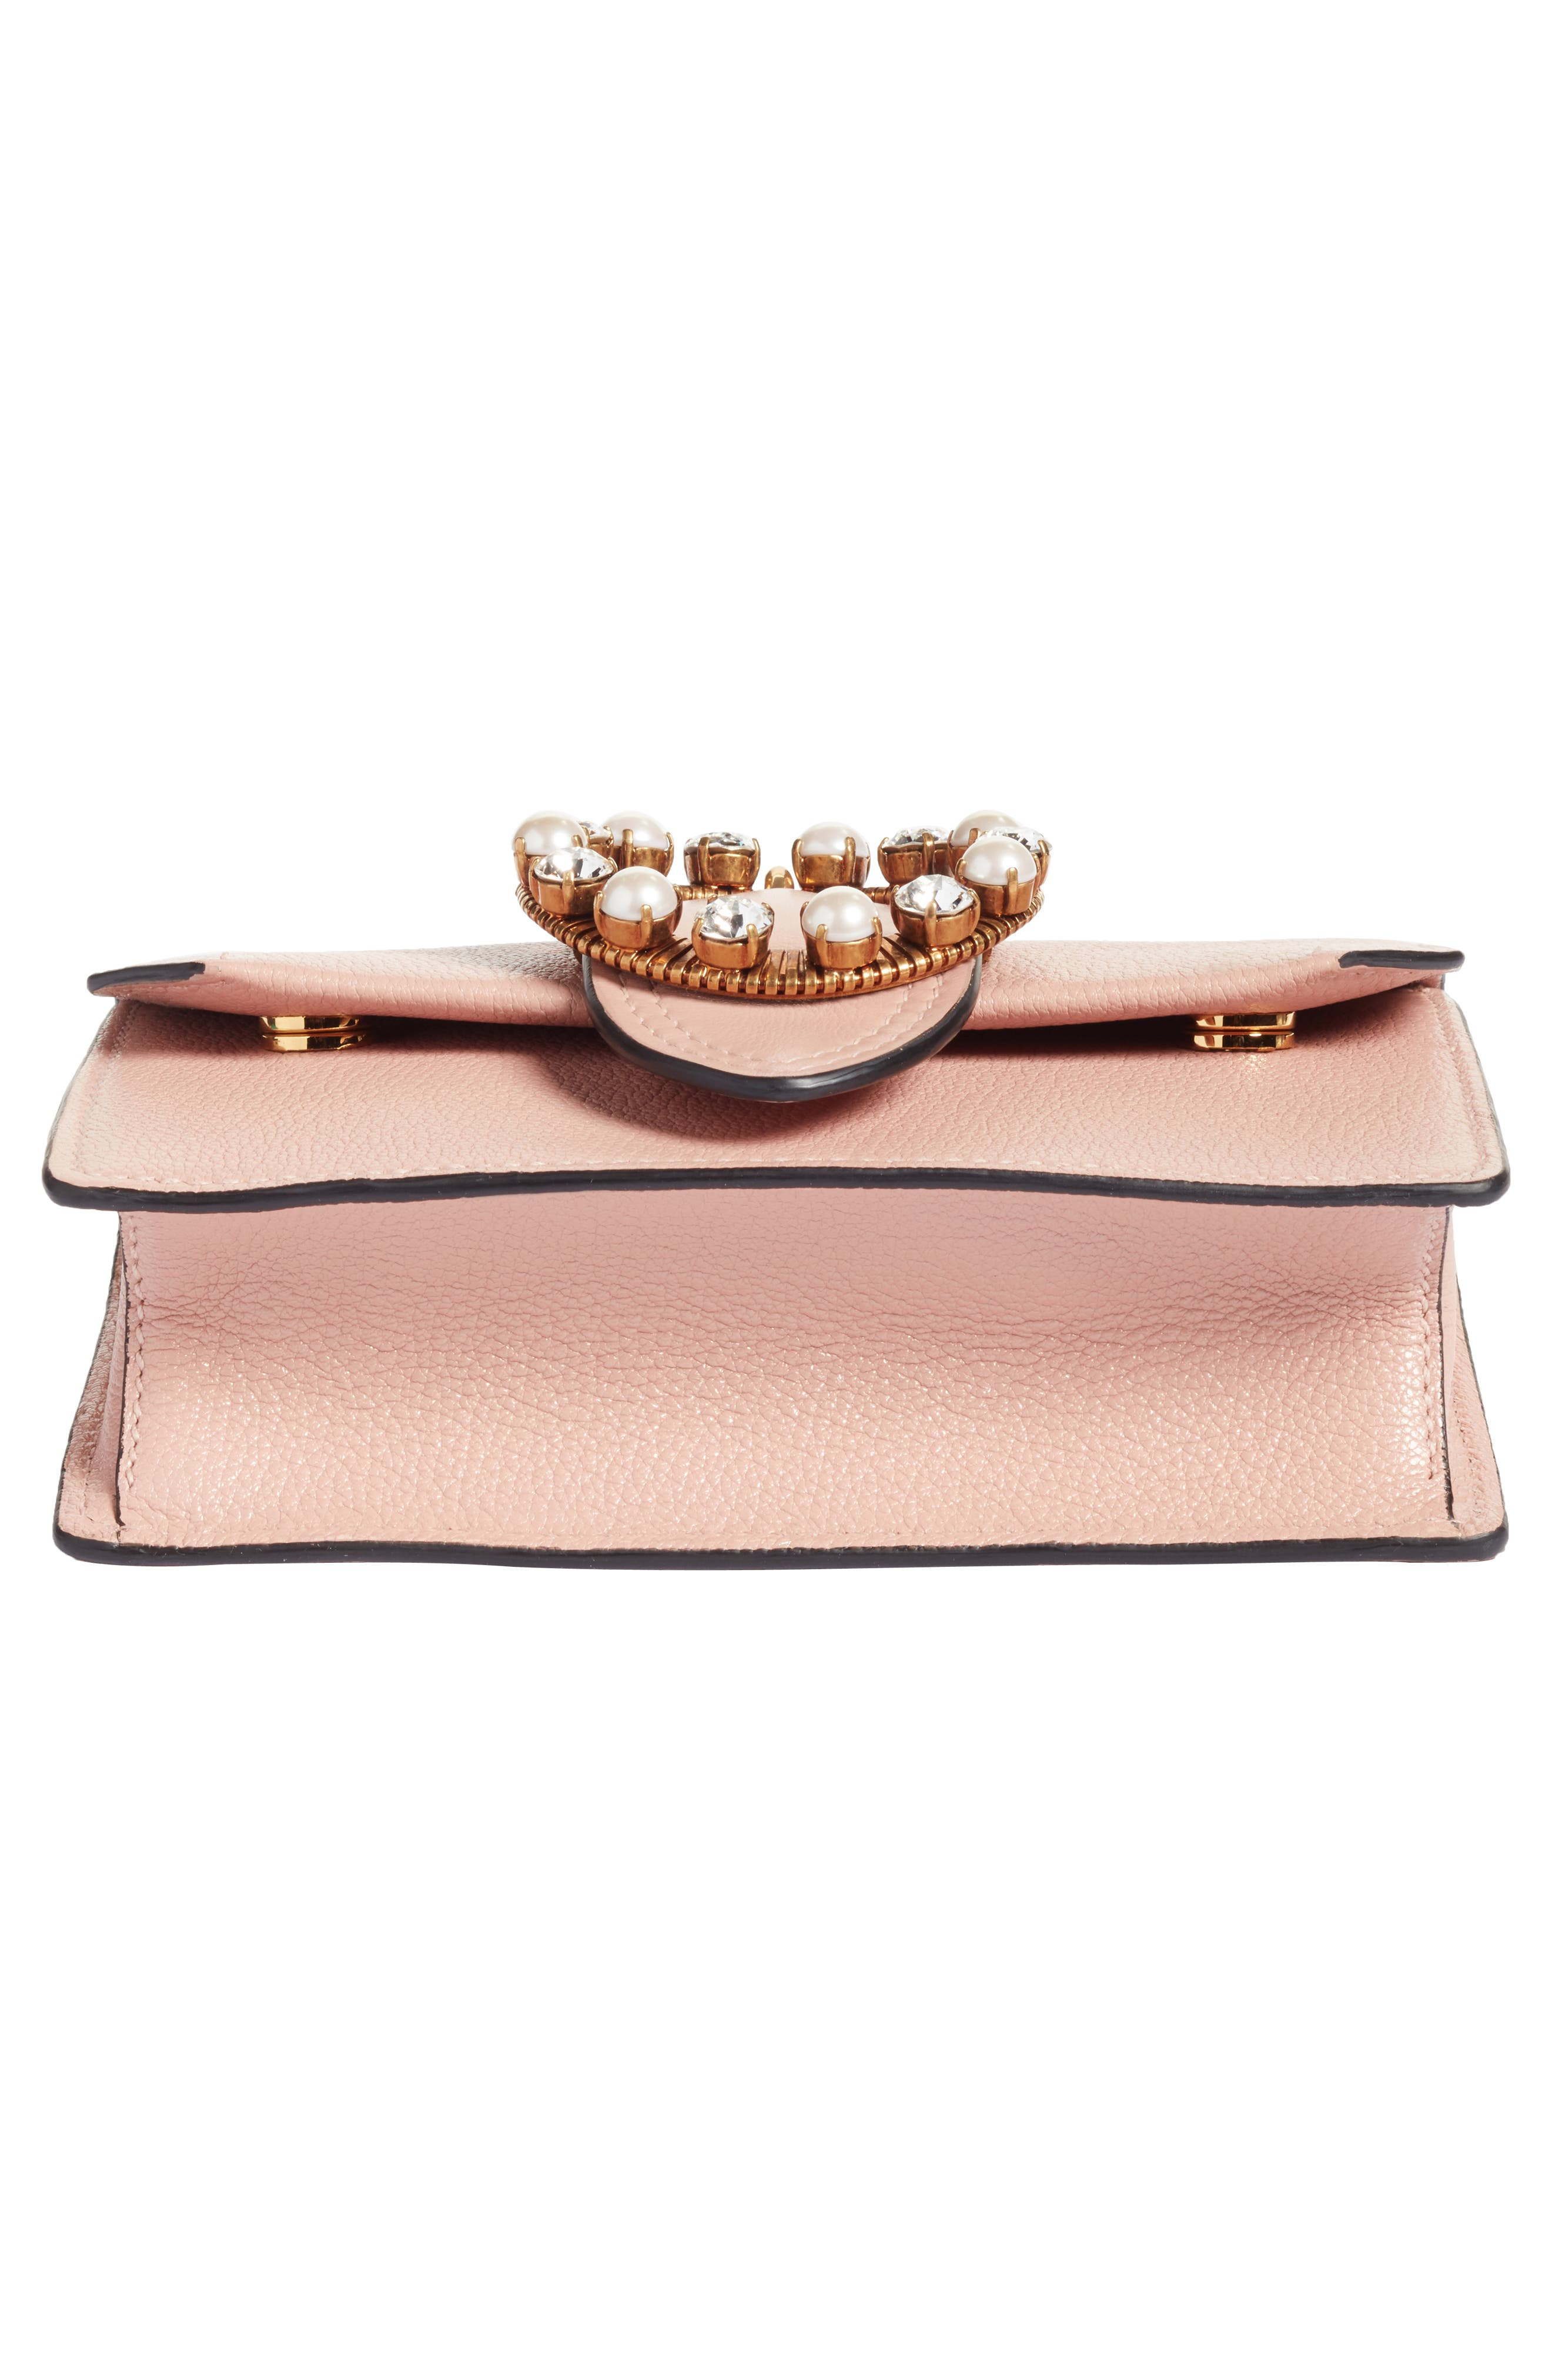 Lady Madras Crystal Embellished Leather Crossbody Bag,                             Alternate thumbnail 6, color,                             Orchidea